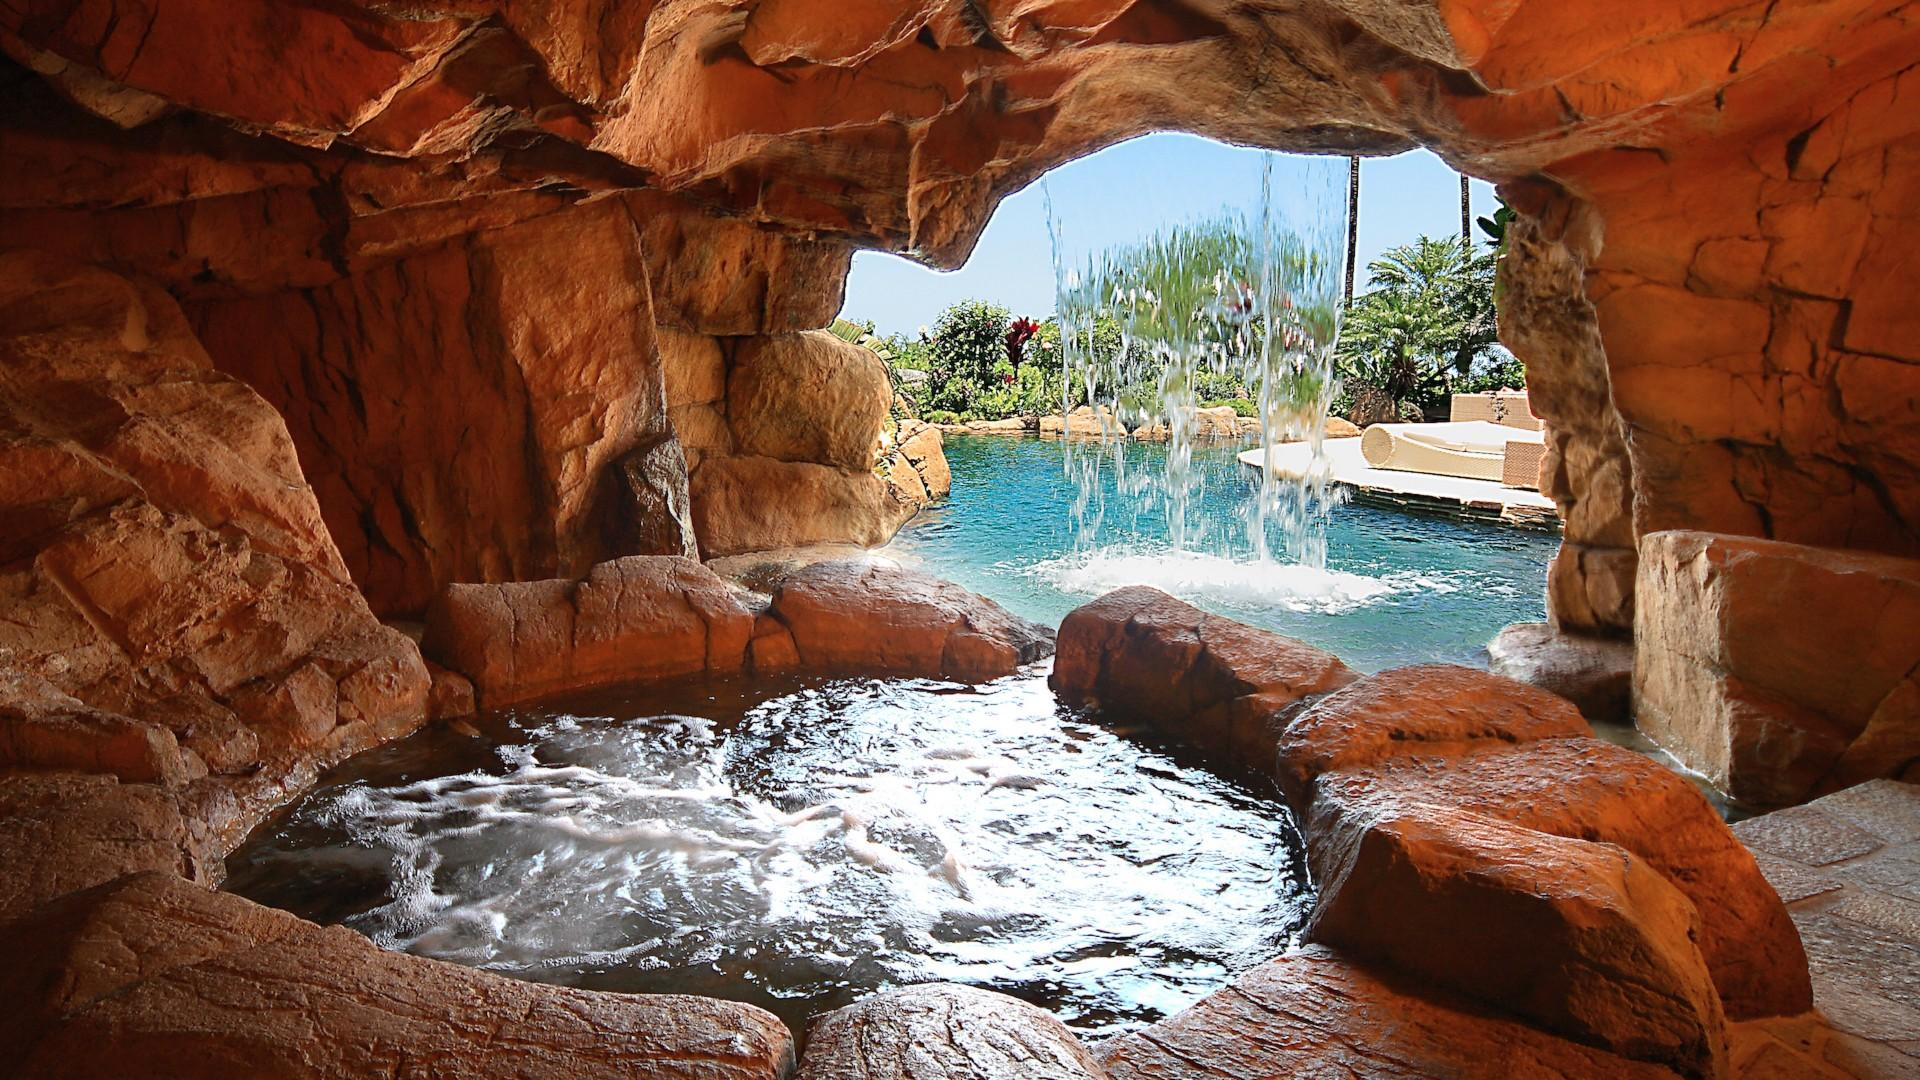 Jacuzzi grotto under waterfall - swim in or walk in and enjoy!